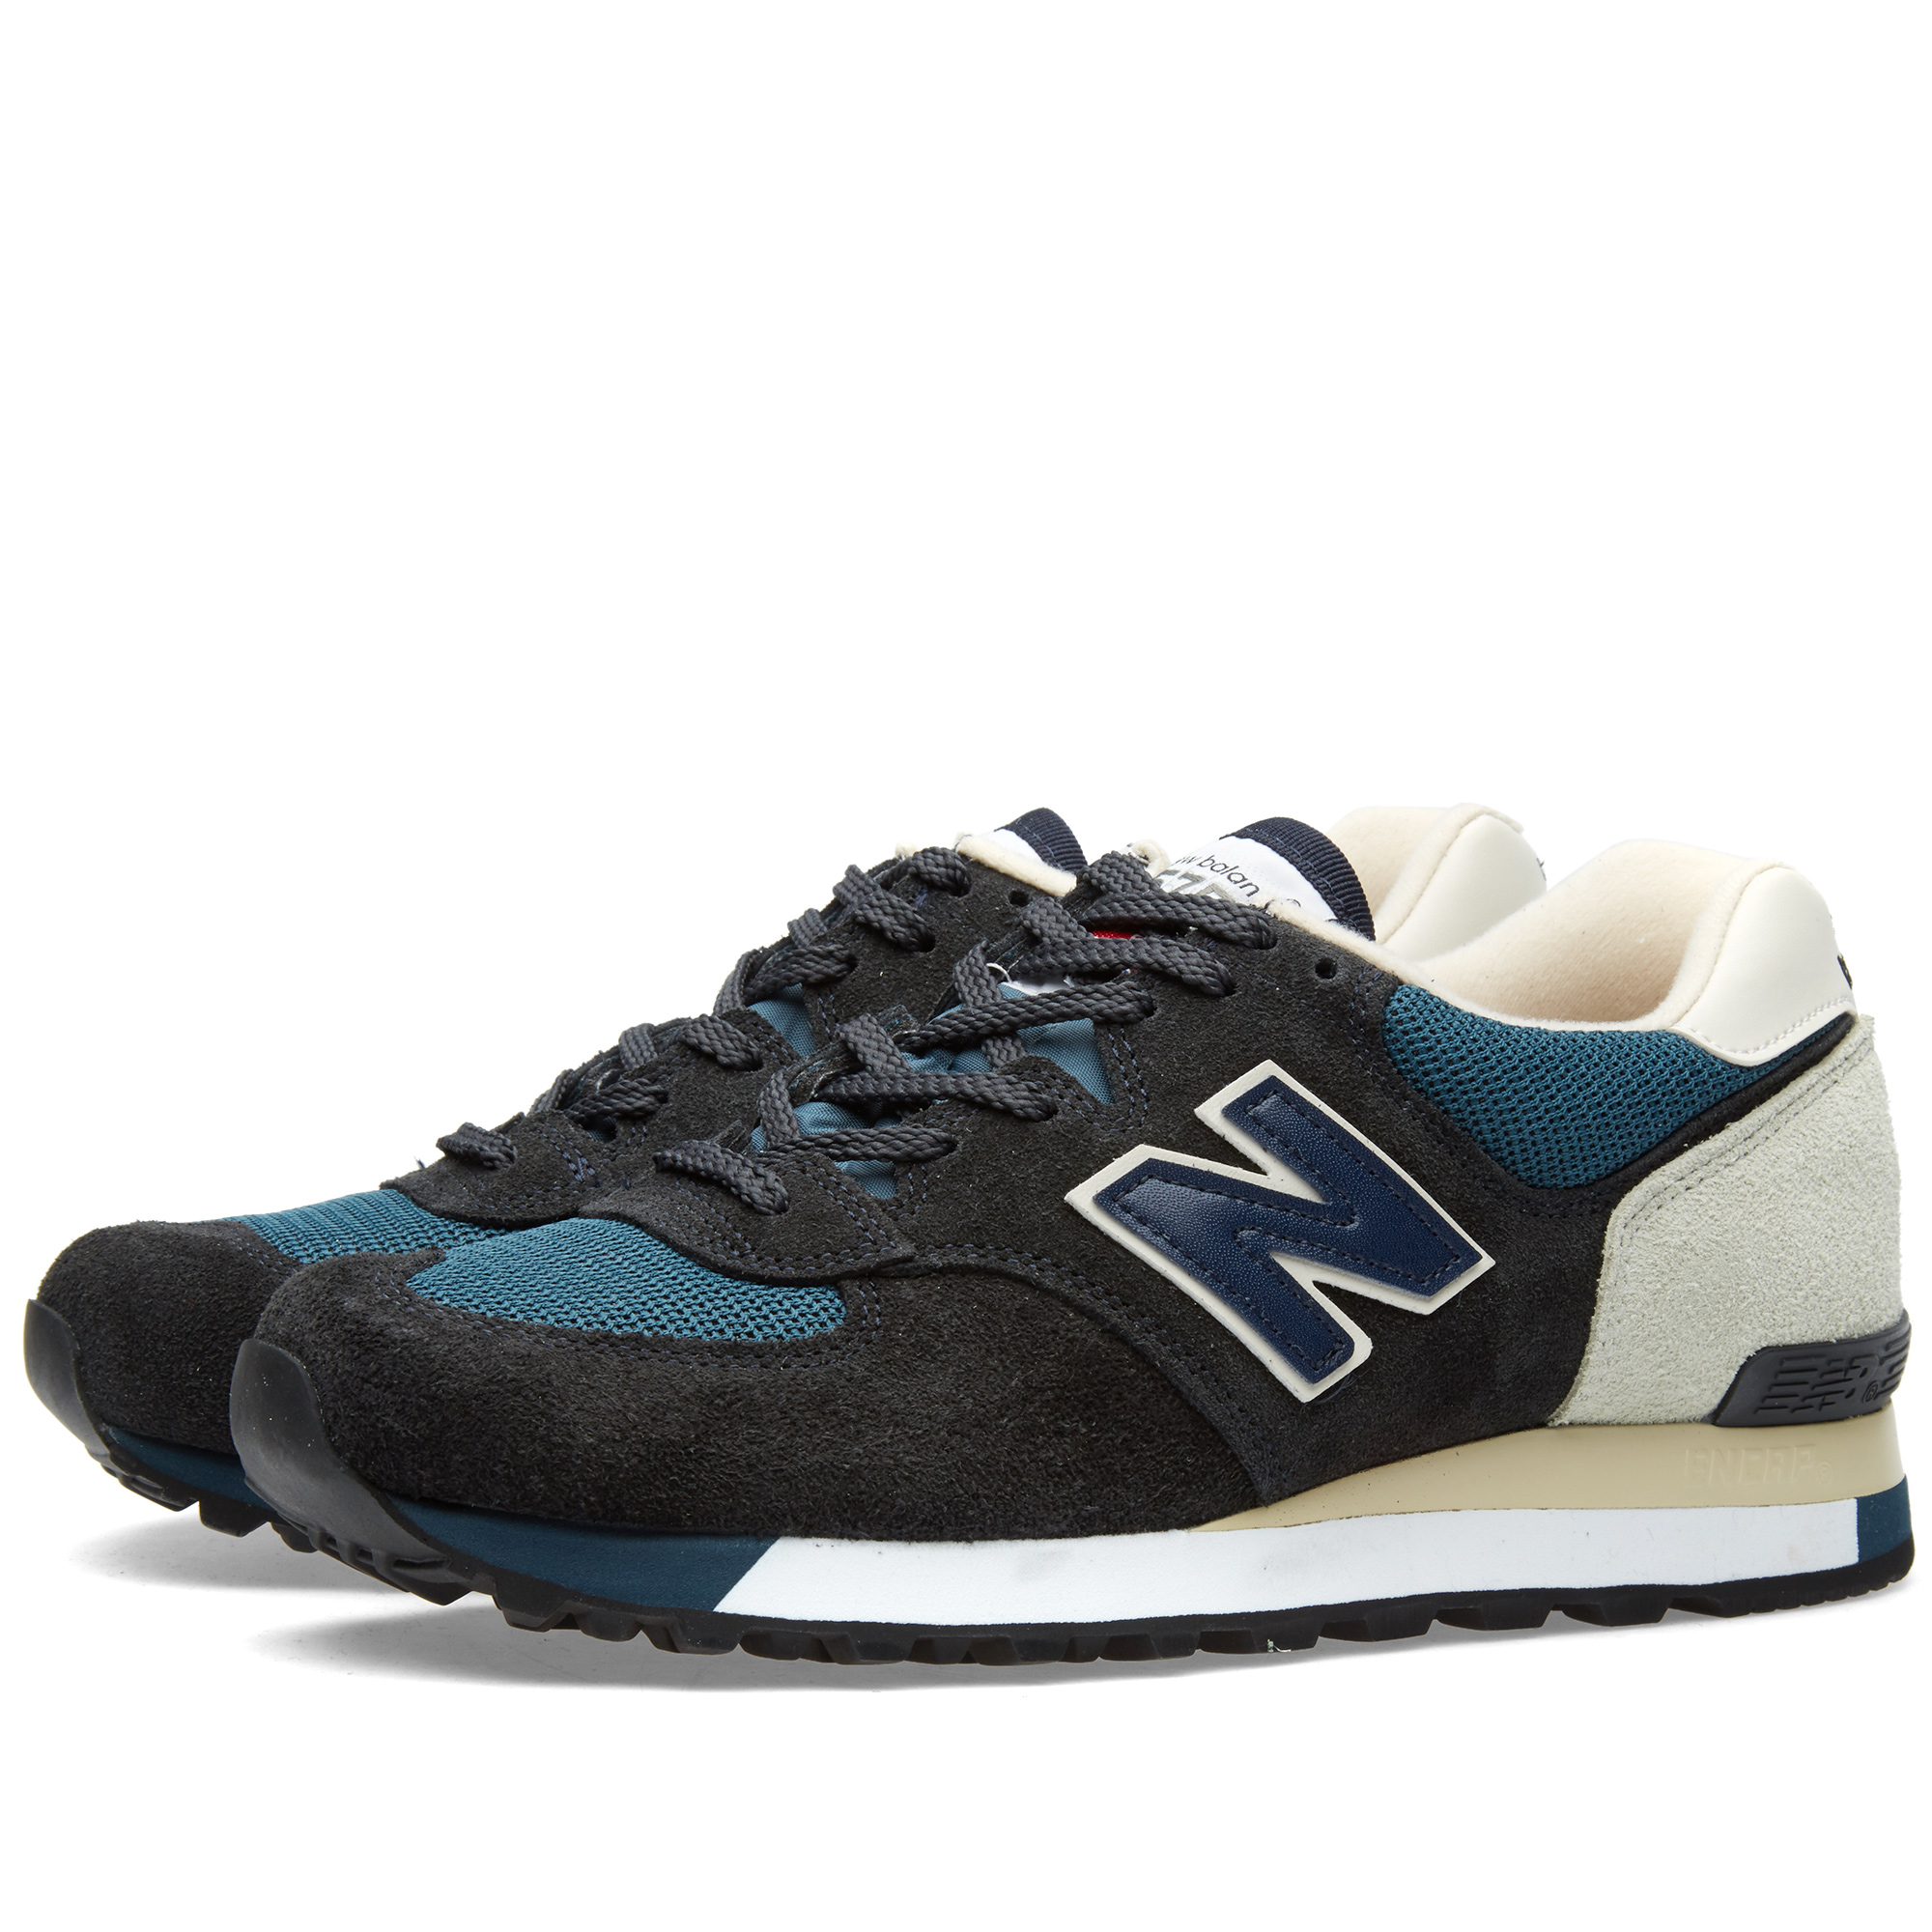 new balance m575sng made in england navy. Black Bedroom Furniture Sets. Home Design Ideas